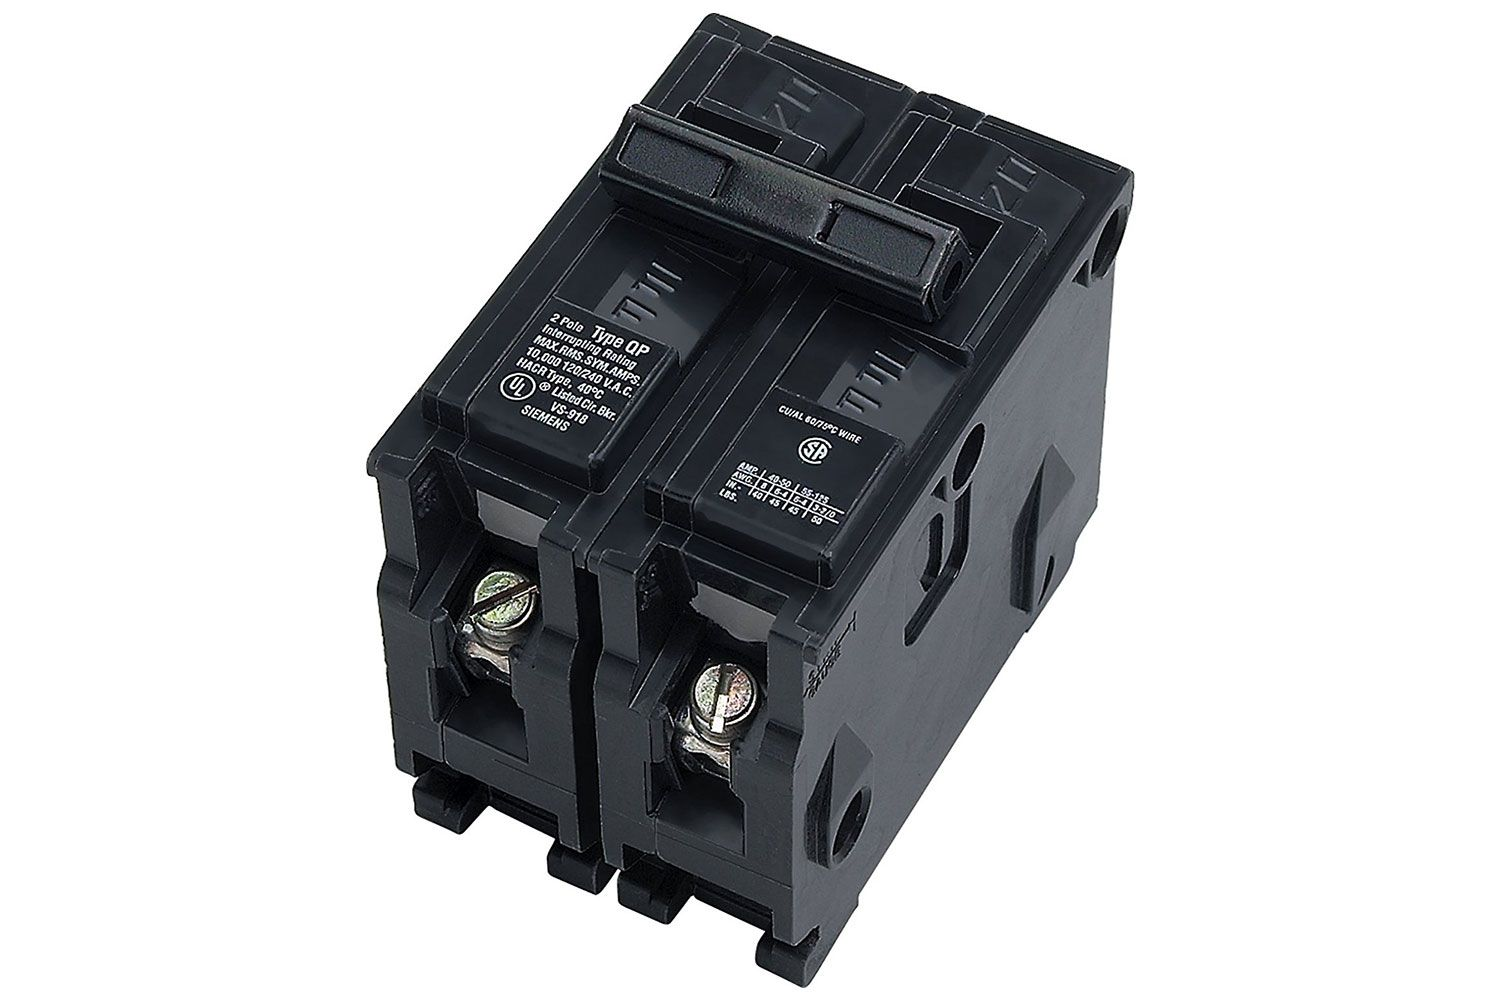 fuse box tripping uk html with Wylex Circuit Braker Tripping Electrician on Wylex Fuse Box Problems also Wylex Circuit Braker Tripping Electrician additionally Index likewise Changing A Fuse In A Hager Fuse Box also Wylex Fuse Box Old.